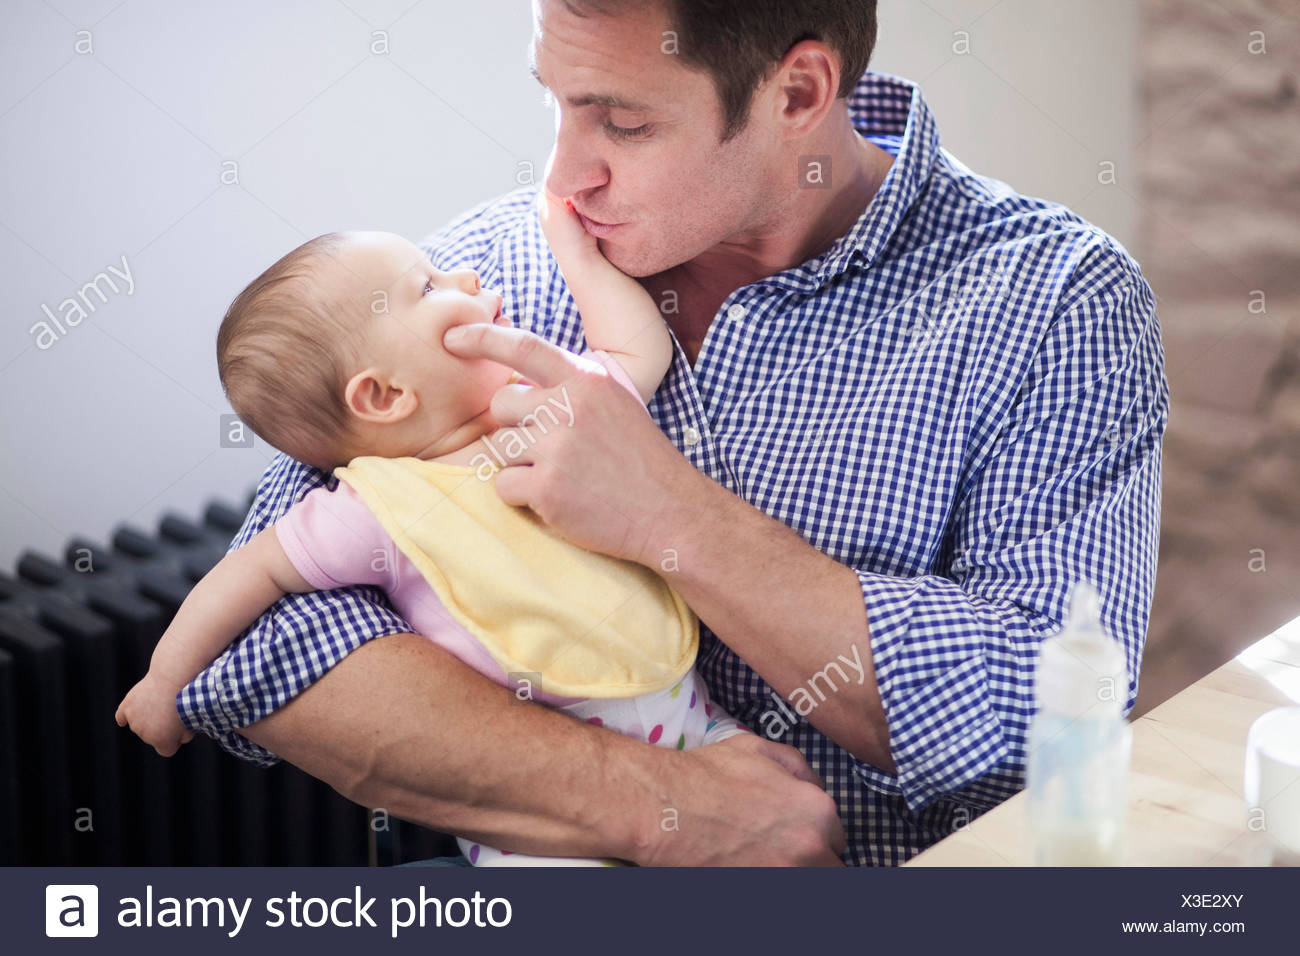 Father cradling baby daughter - Stock Image